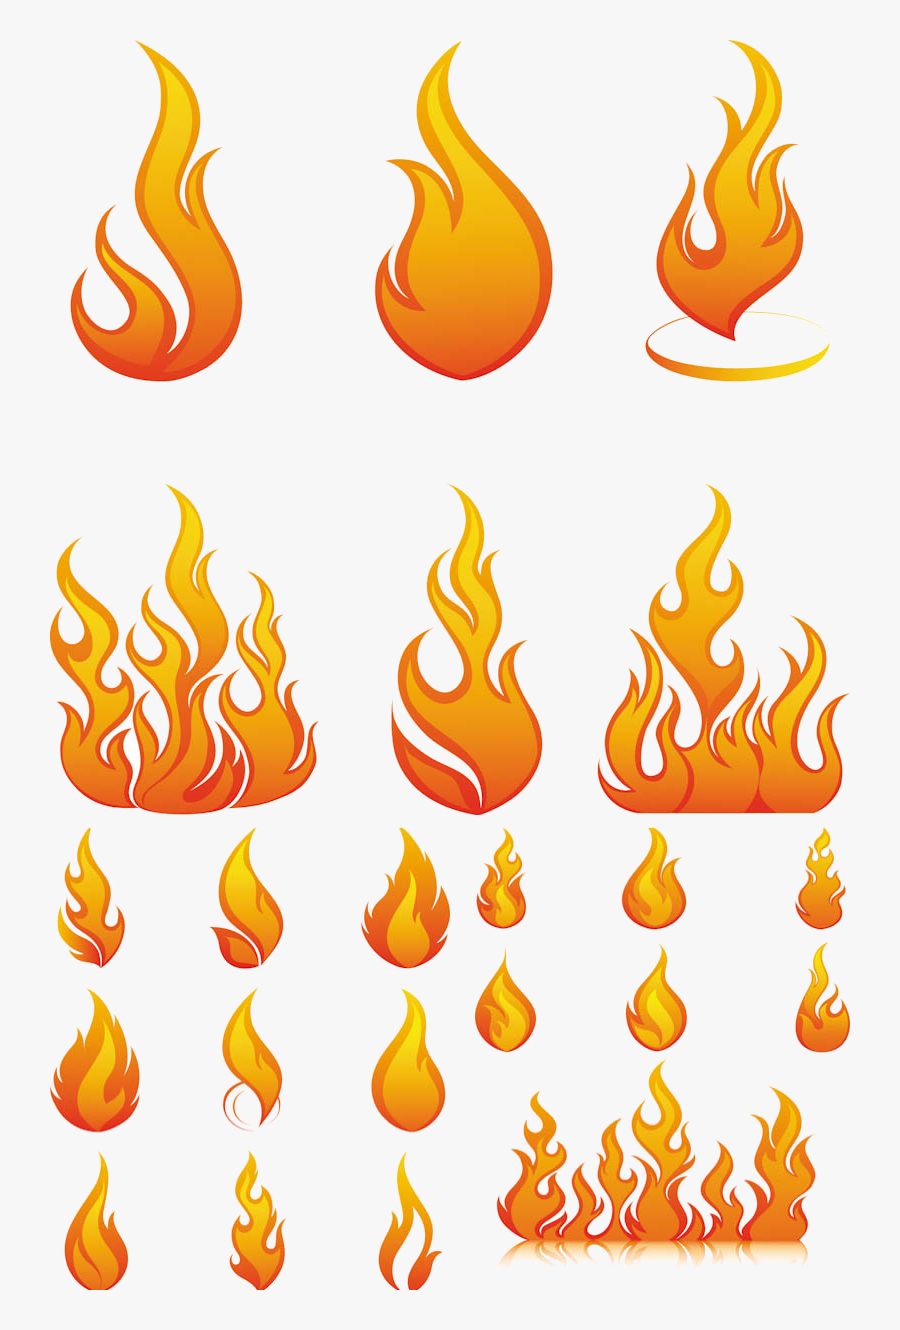 Flame Free Flames Or Fire Clipart And Cliparts For - Fire Flames Vector, Transparent Clipart